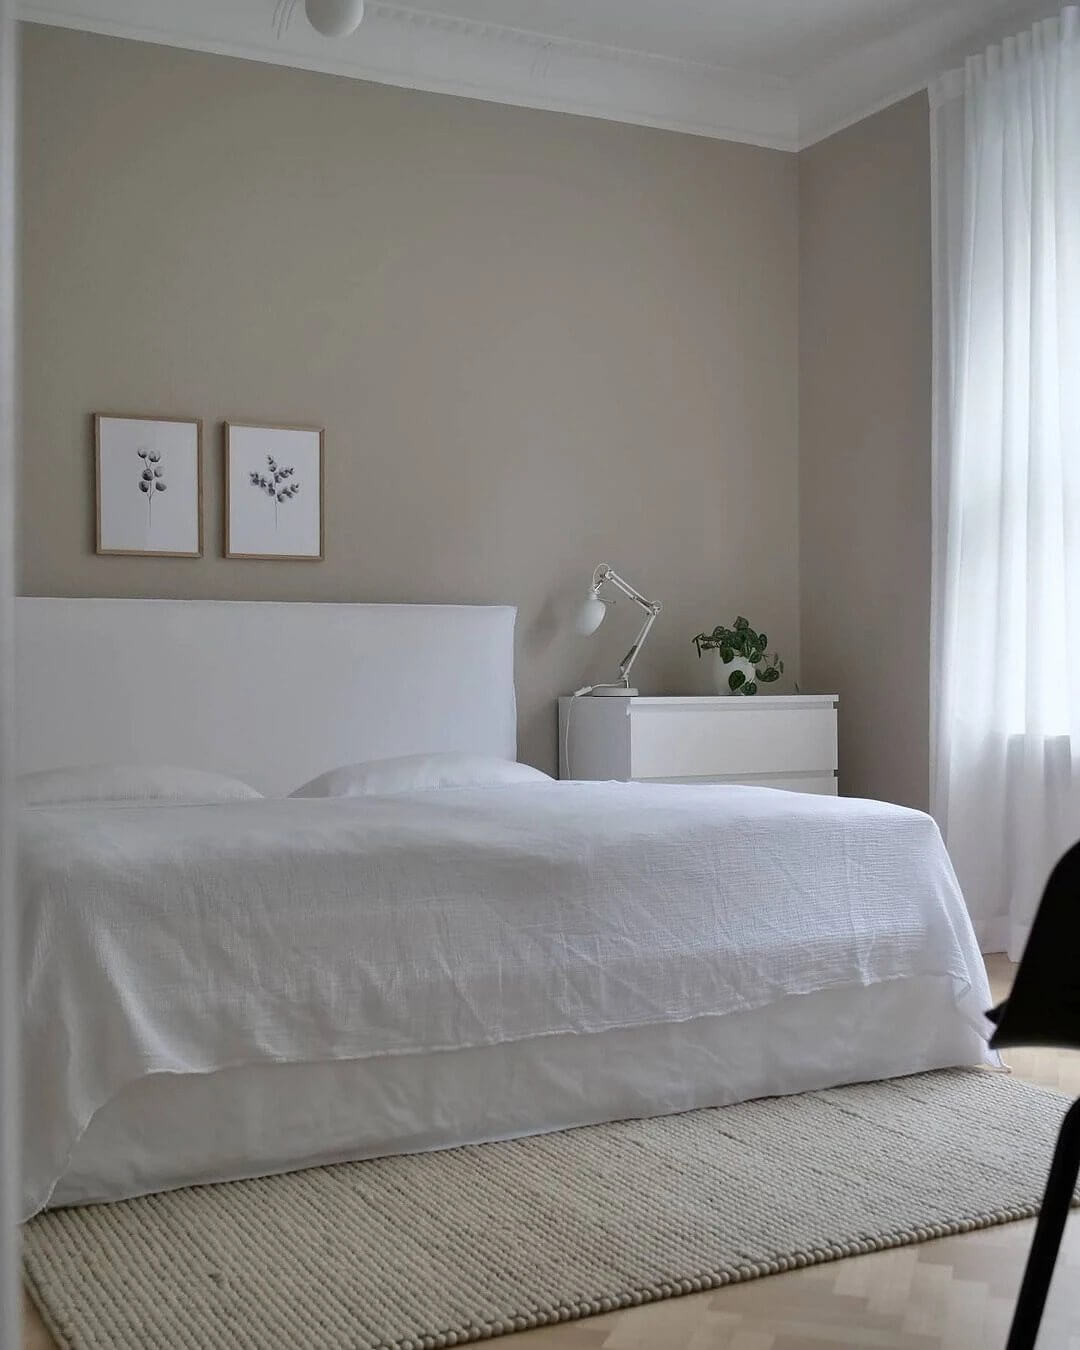 10. Almost sterile interior with white textiles and furniture